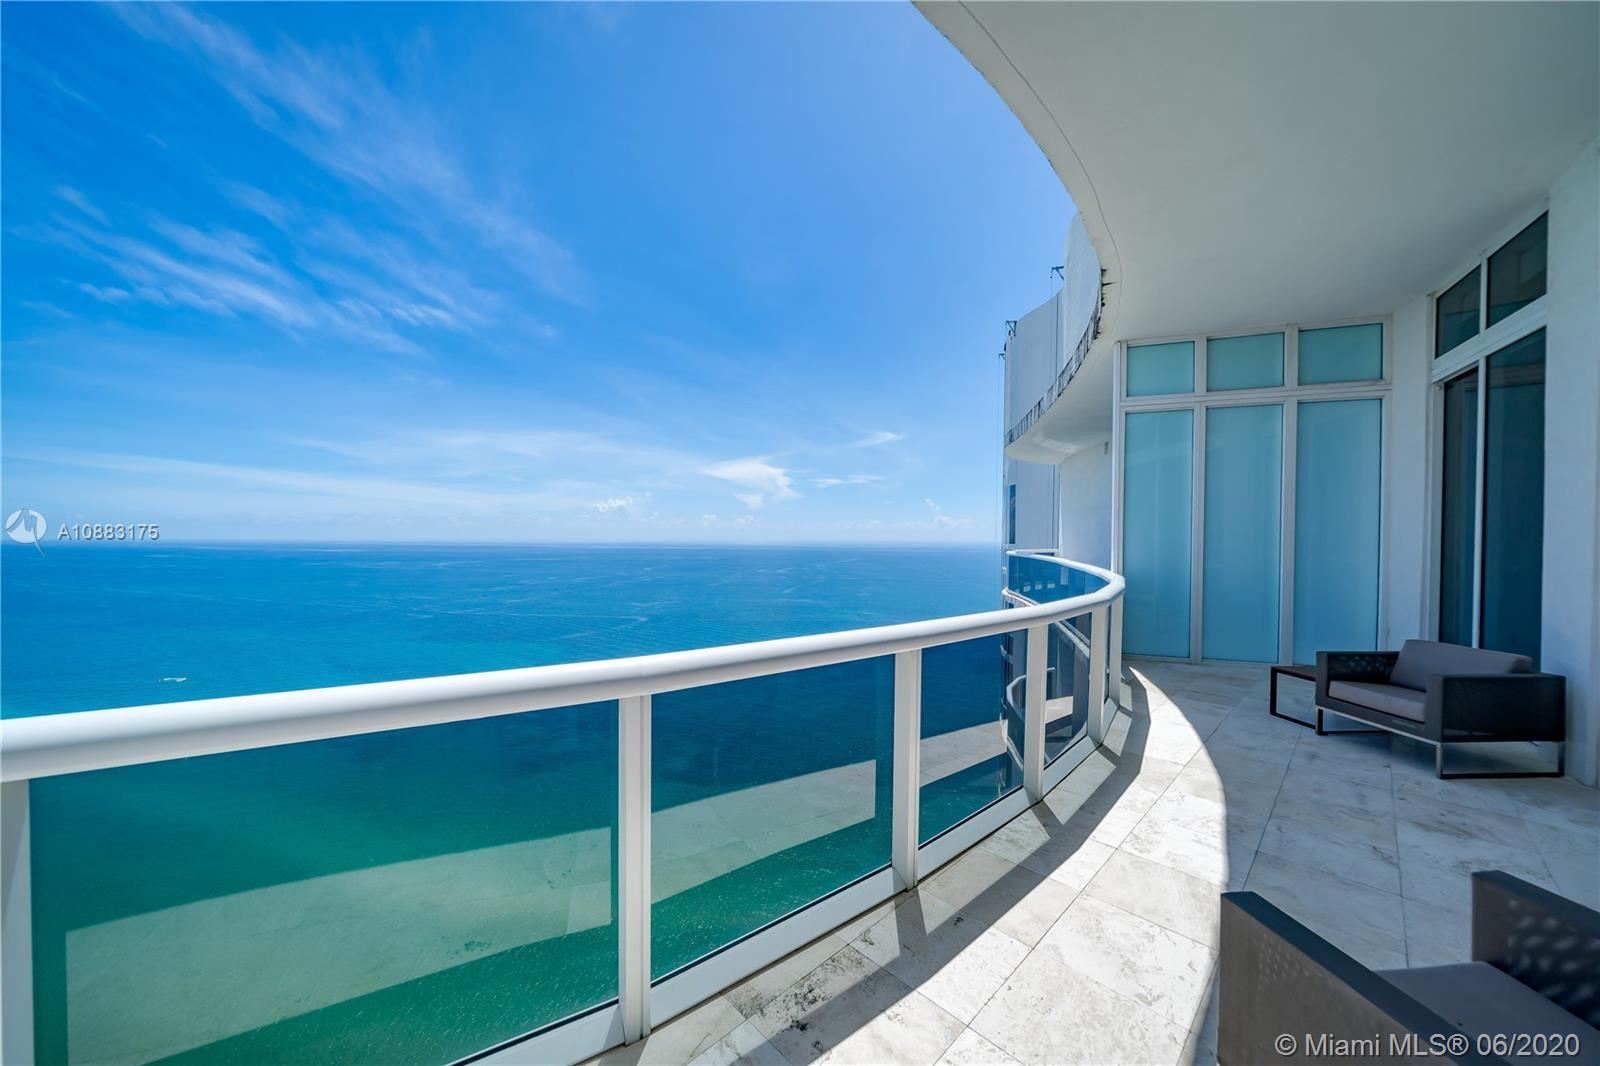 15811 Collins Ave #4303, Sunny Isles, FL 33160 - #: A10883175